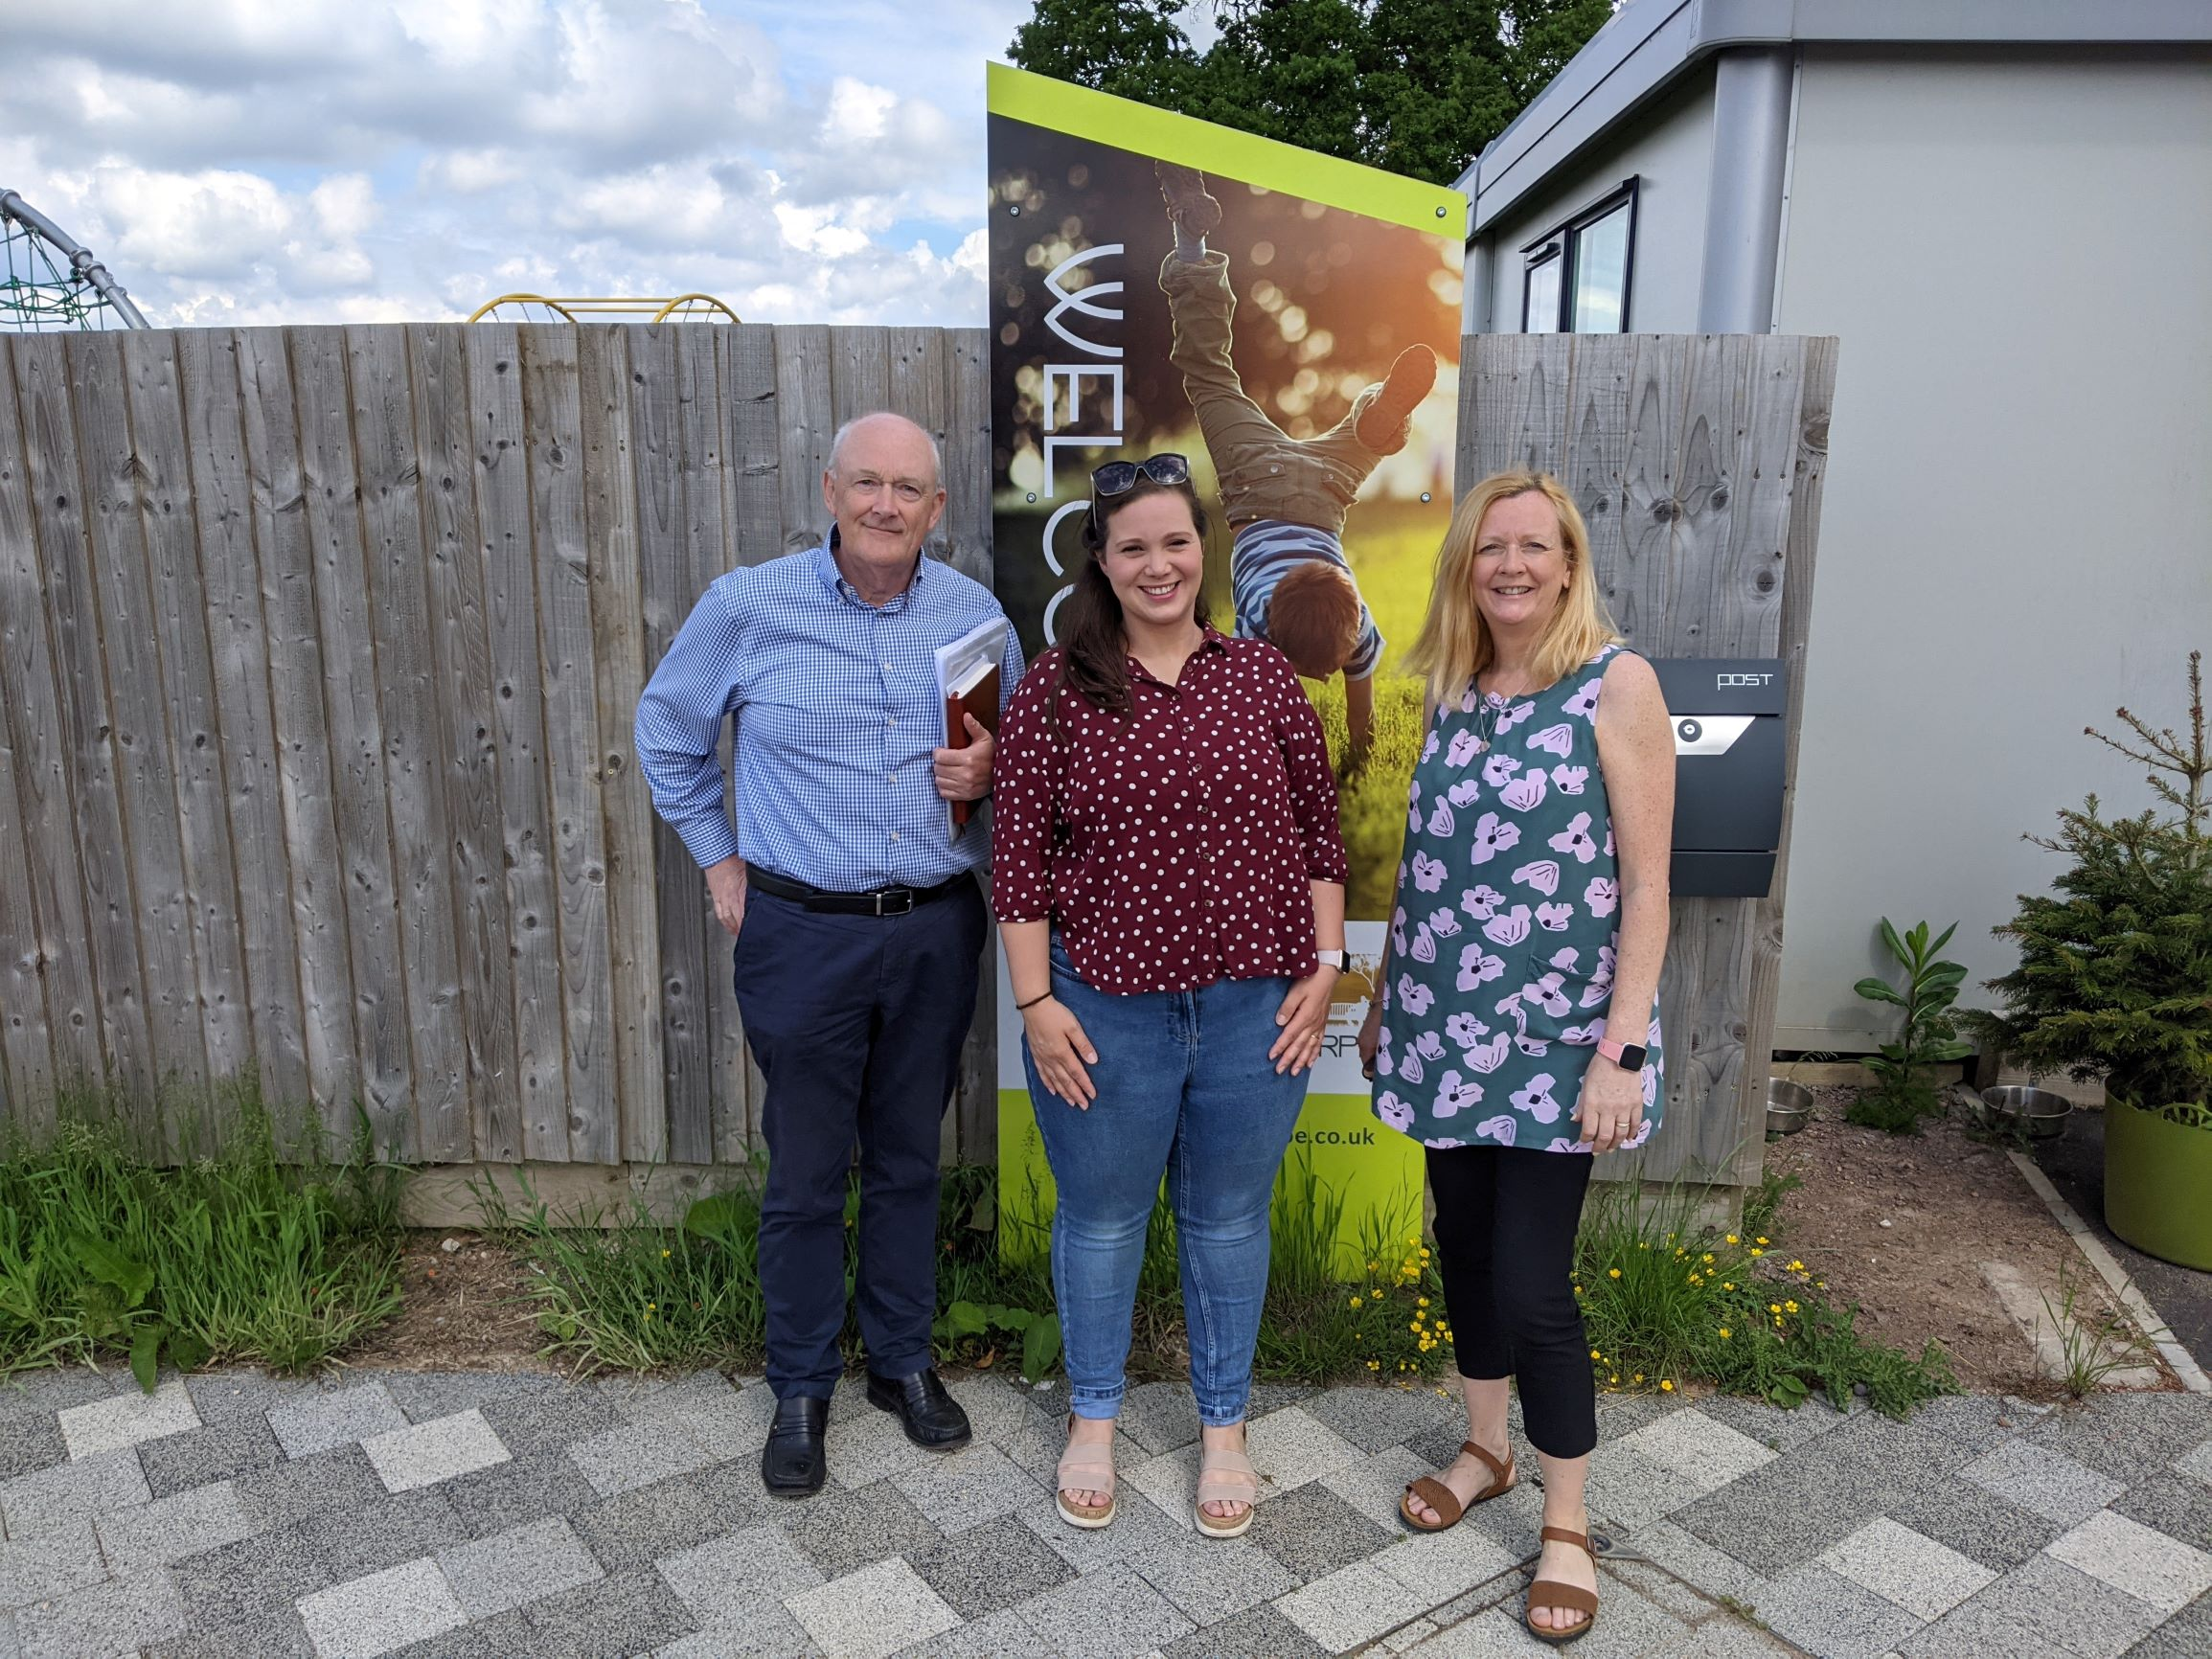 LOCAL RESIDENT BECOMES AMBASSADOR FOR SUSTAINABLE TRAVEL AT NEW PROPERTY DEVELOPMENT